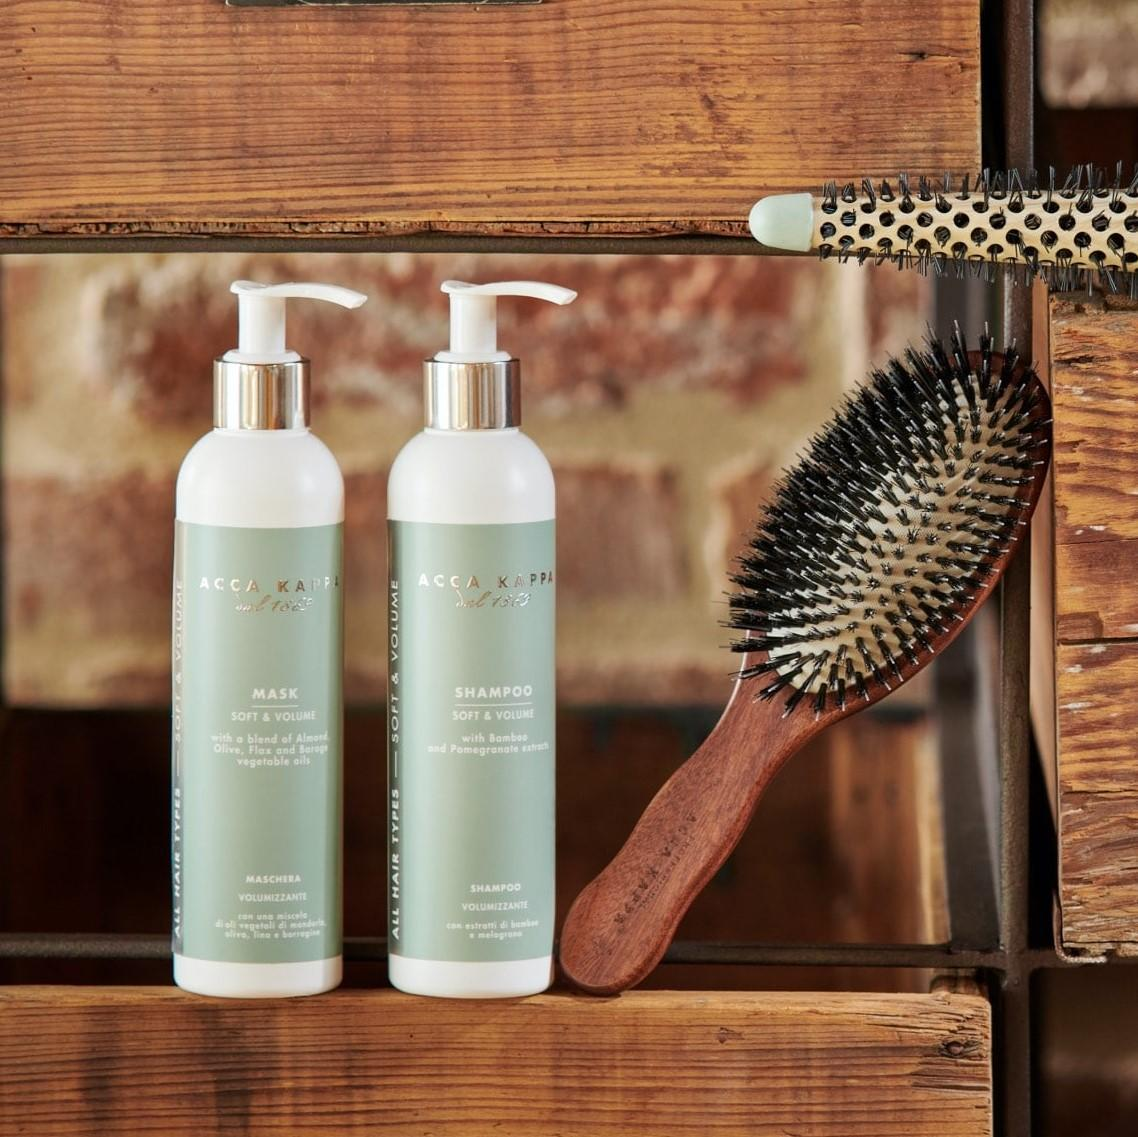 Pictured: The Soft & Volume Shampoo and Mask by Acca Kappa